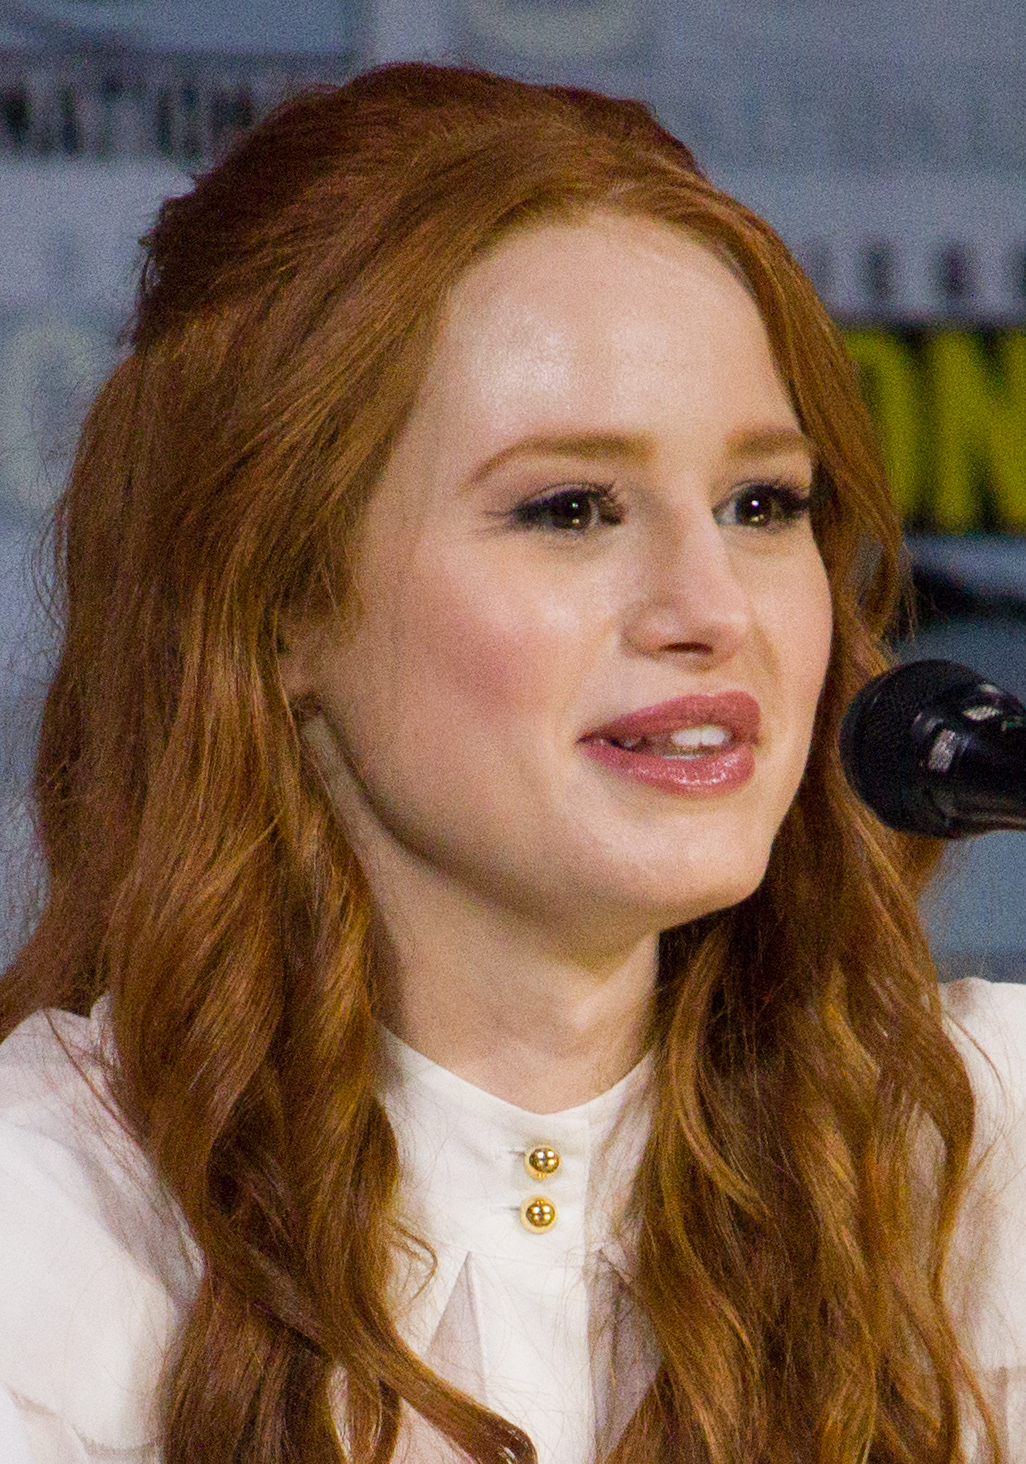 The 24-year old daughter of father (?) and mother(?) Madelaine Petsch in 2019 photo. Madelaine Petsch earned a  million dollar salary - leaving the net worth at  million in 2019